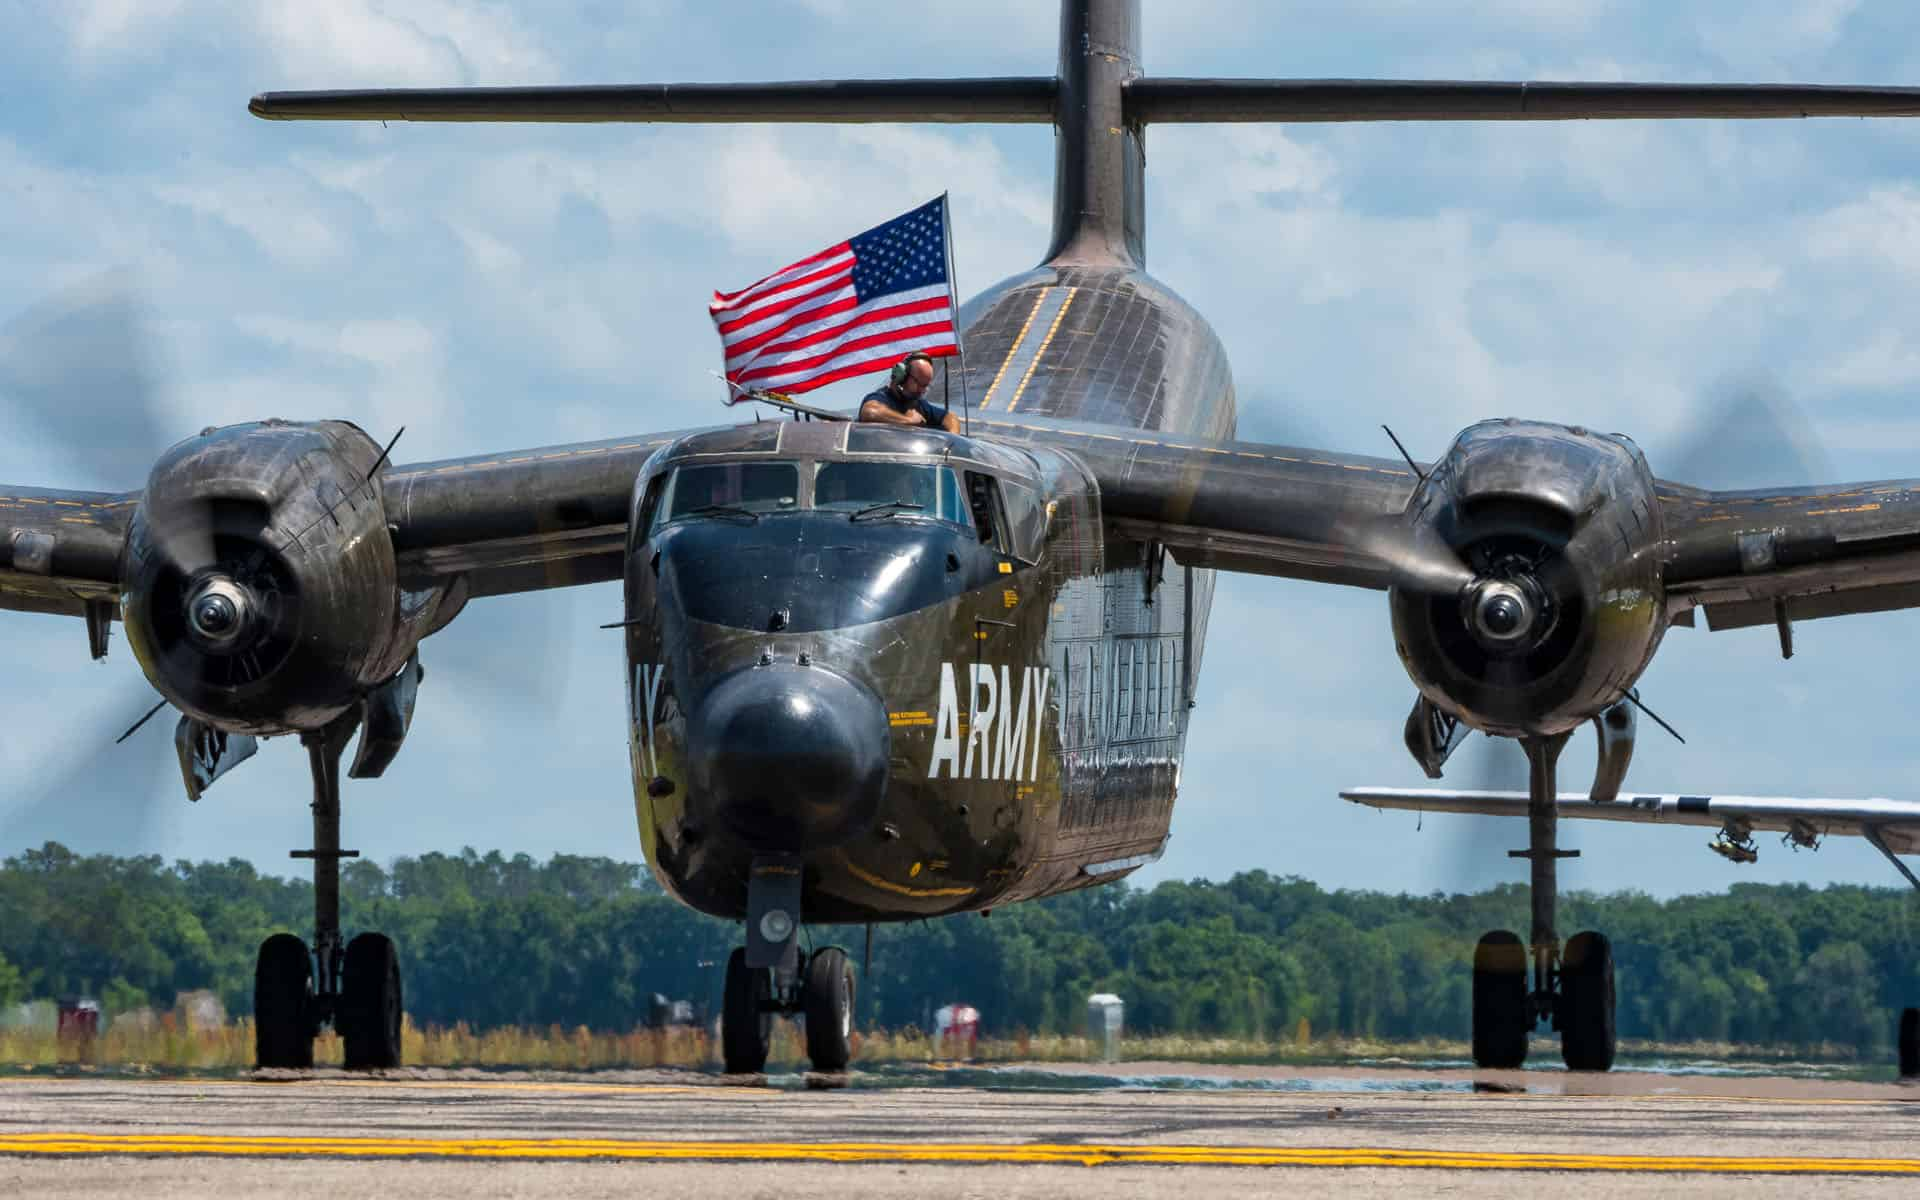 War Plane with American Flag